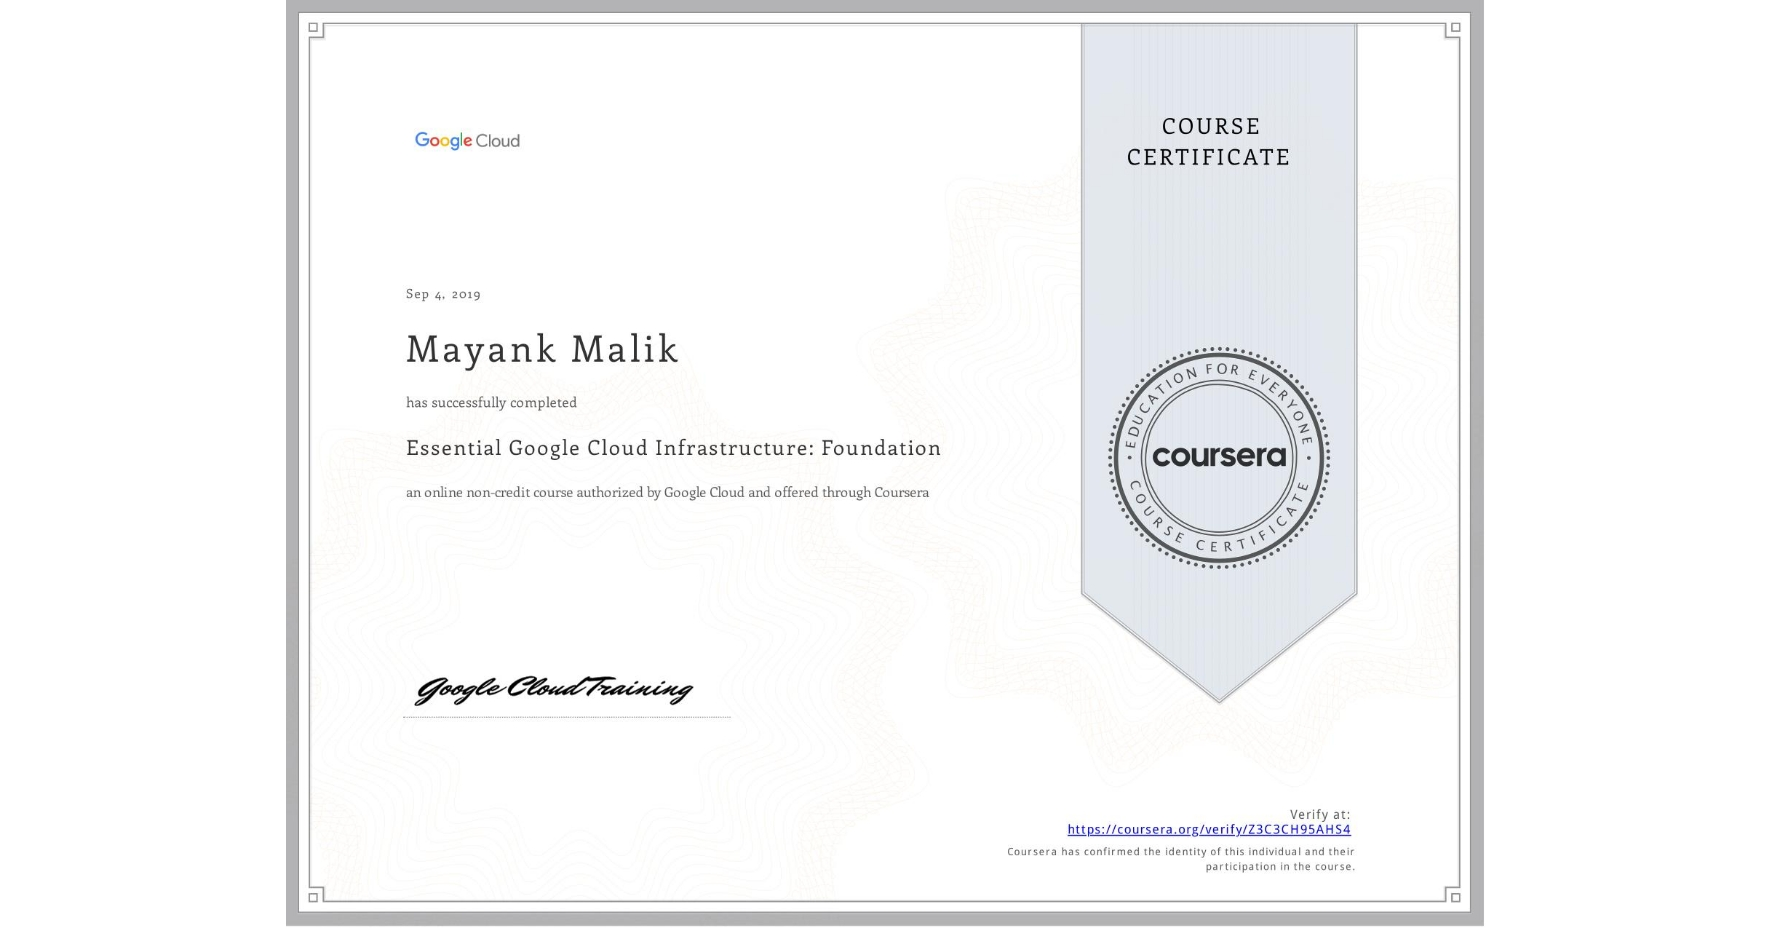 View certificate for Mayank Malik, Essential Google Cloud Infrastructure: Foundation, an online non-credit course authorized by Google Cloud and offered through Coursera